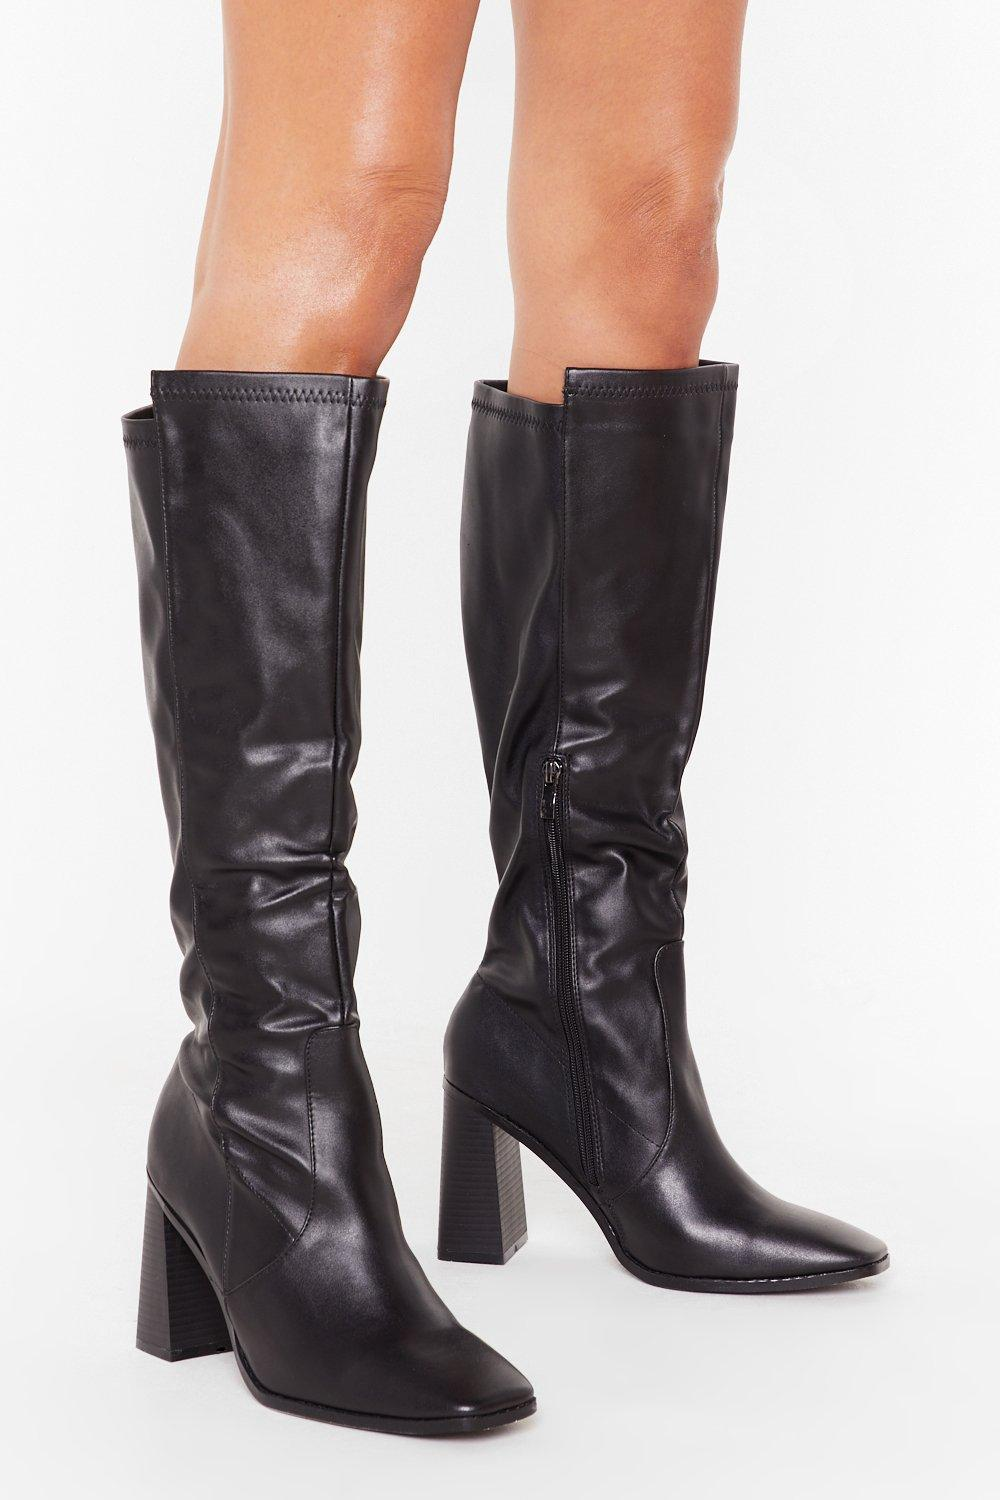 Image of As If We Flare Faux Leather Knee-High Boots